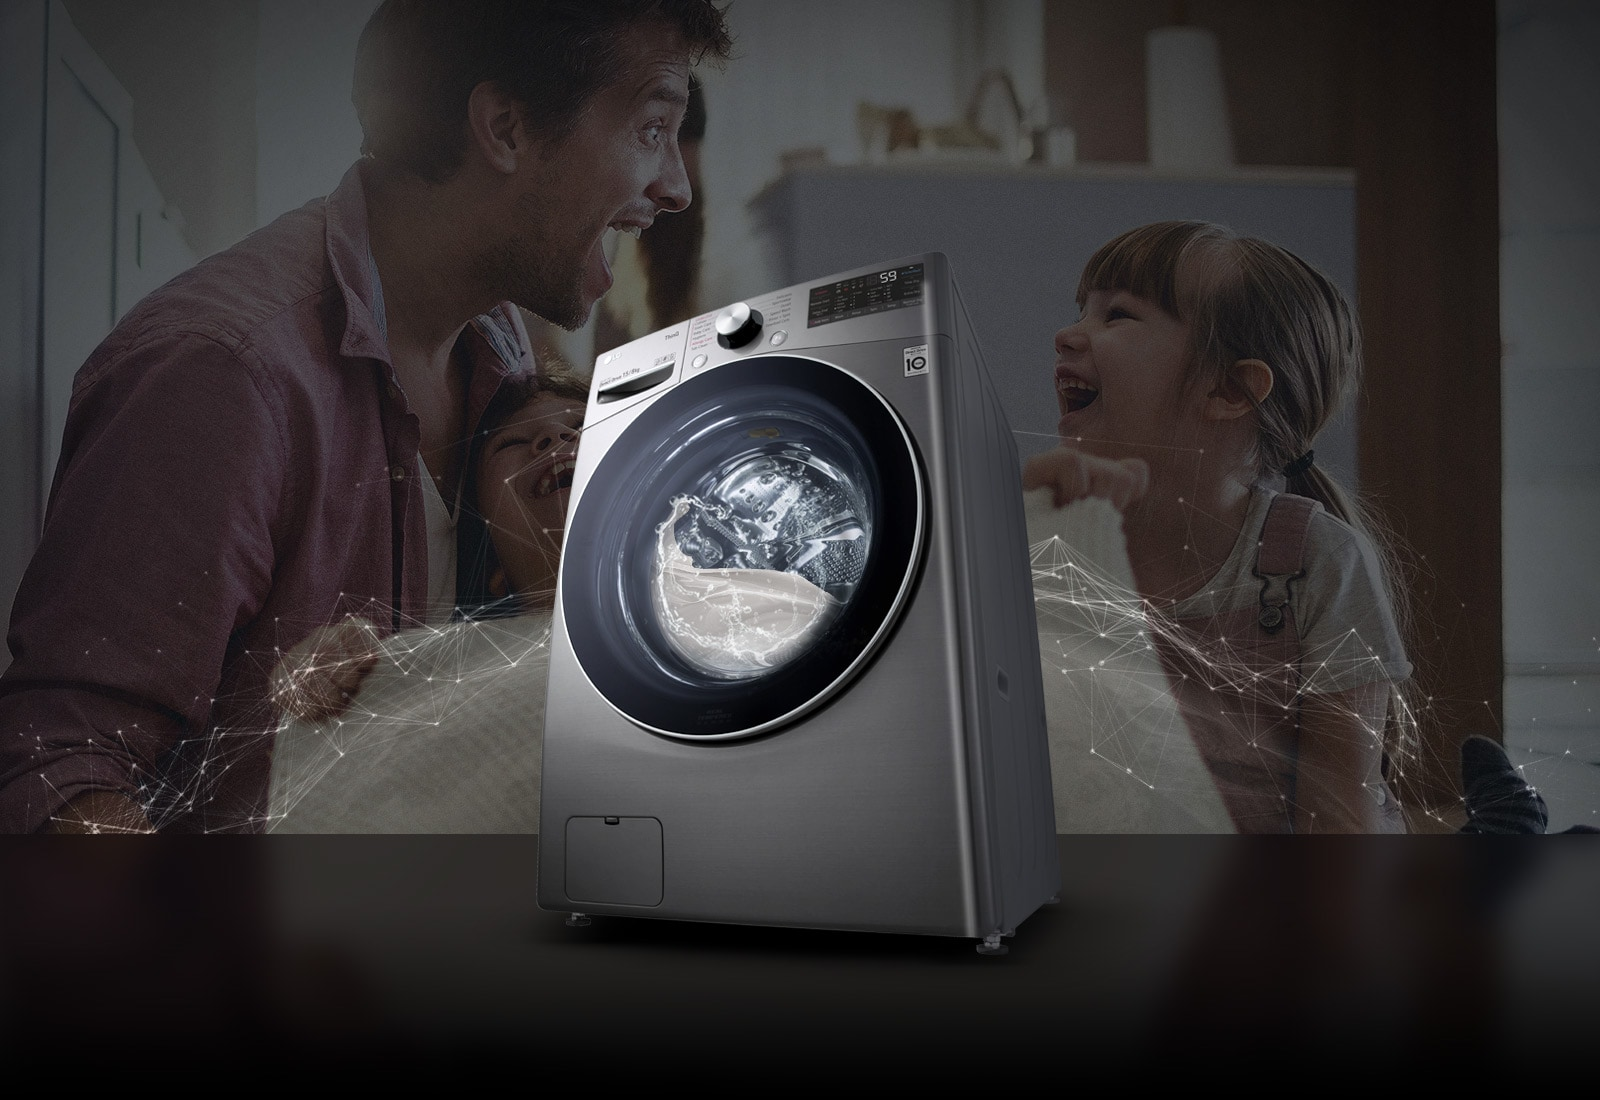 Father and daughters laugh in the background as they hold a clean blanket. A White washing machine front load washer in the foreground.